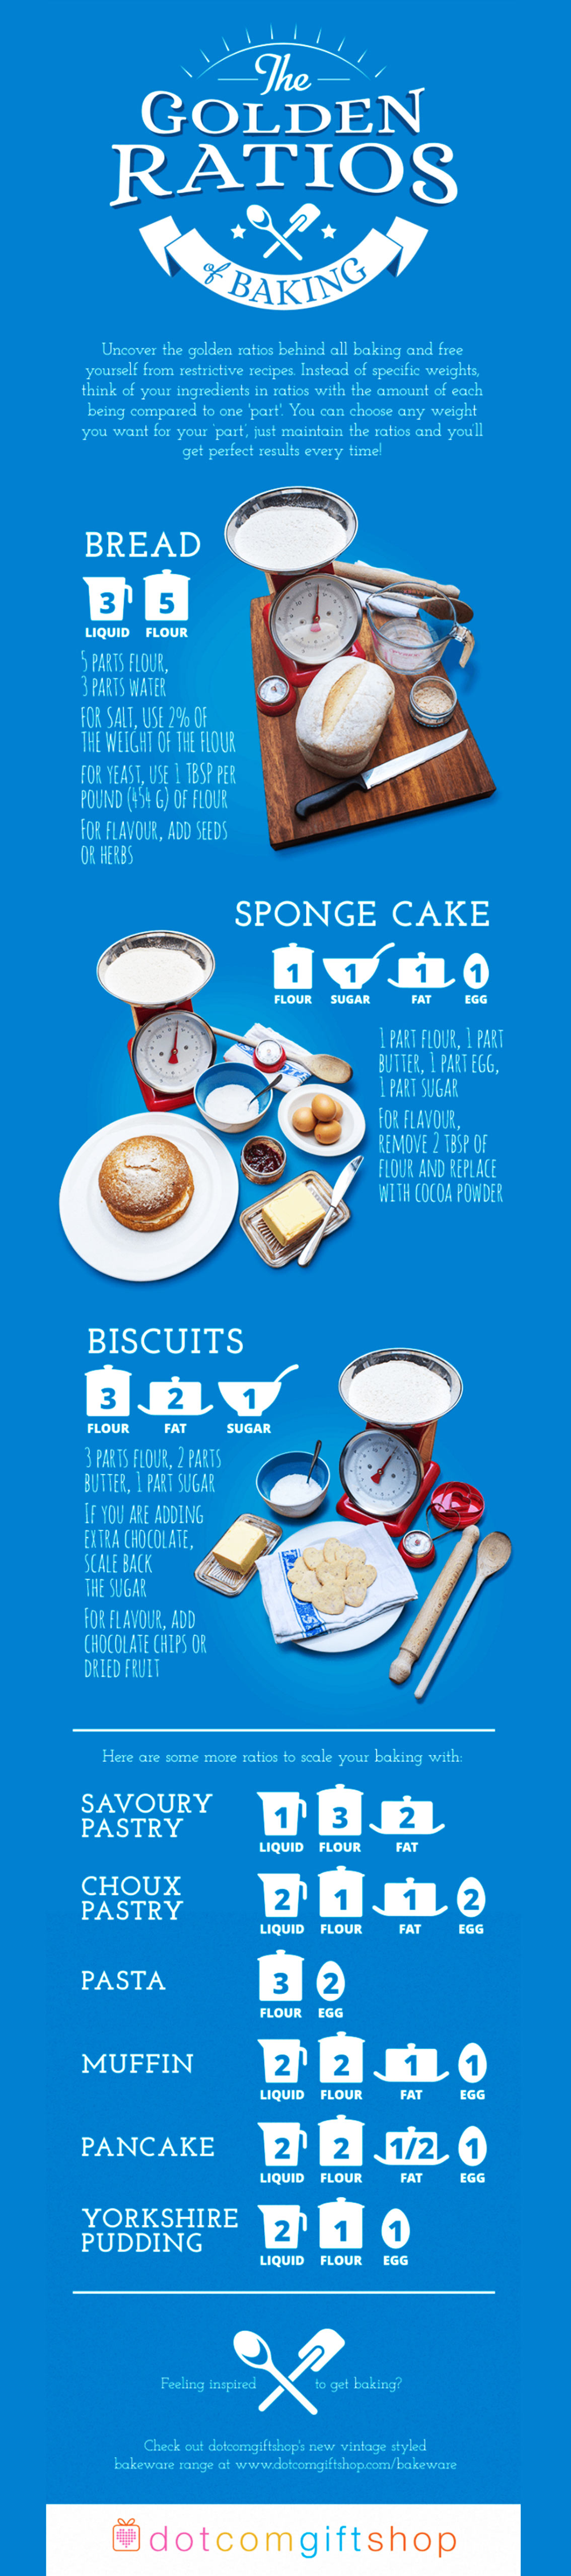 The Golden Ratios Of Baking Infographic